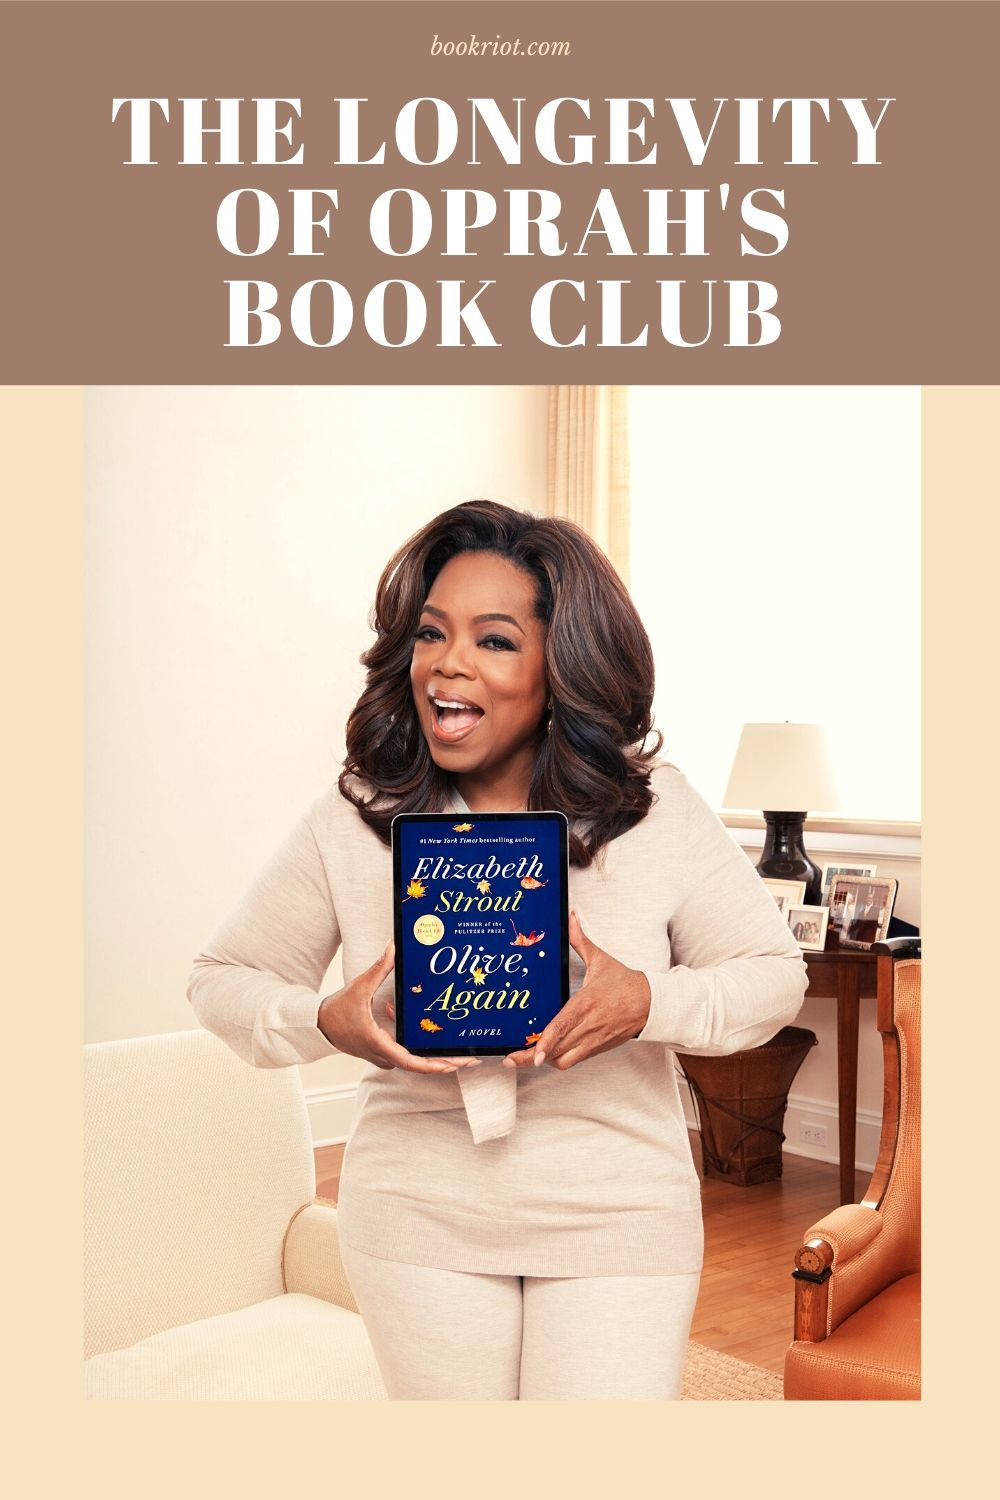 The Longevity Of Oprah S Book Club In 2020 Oprahs Book Club Celebrity Books Book Club Books